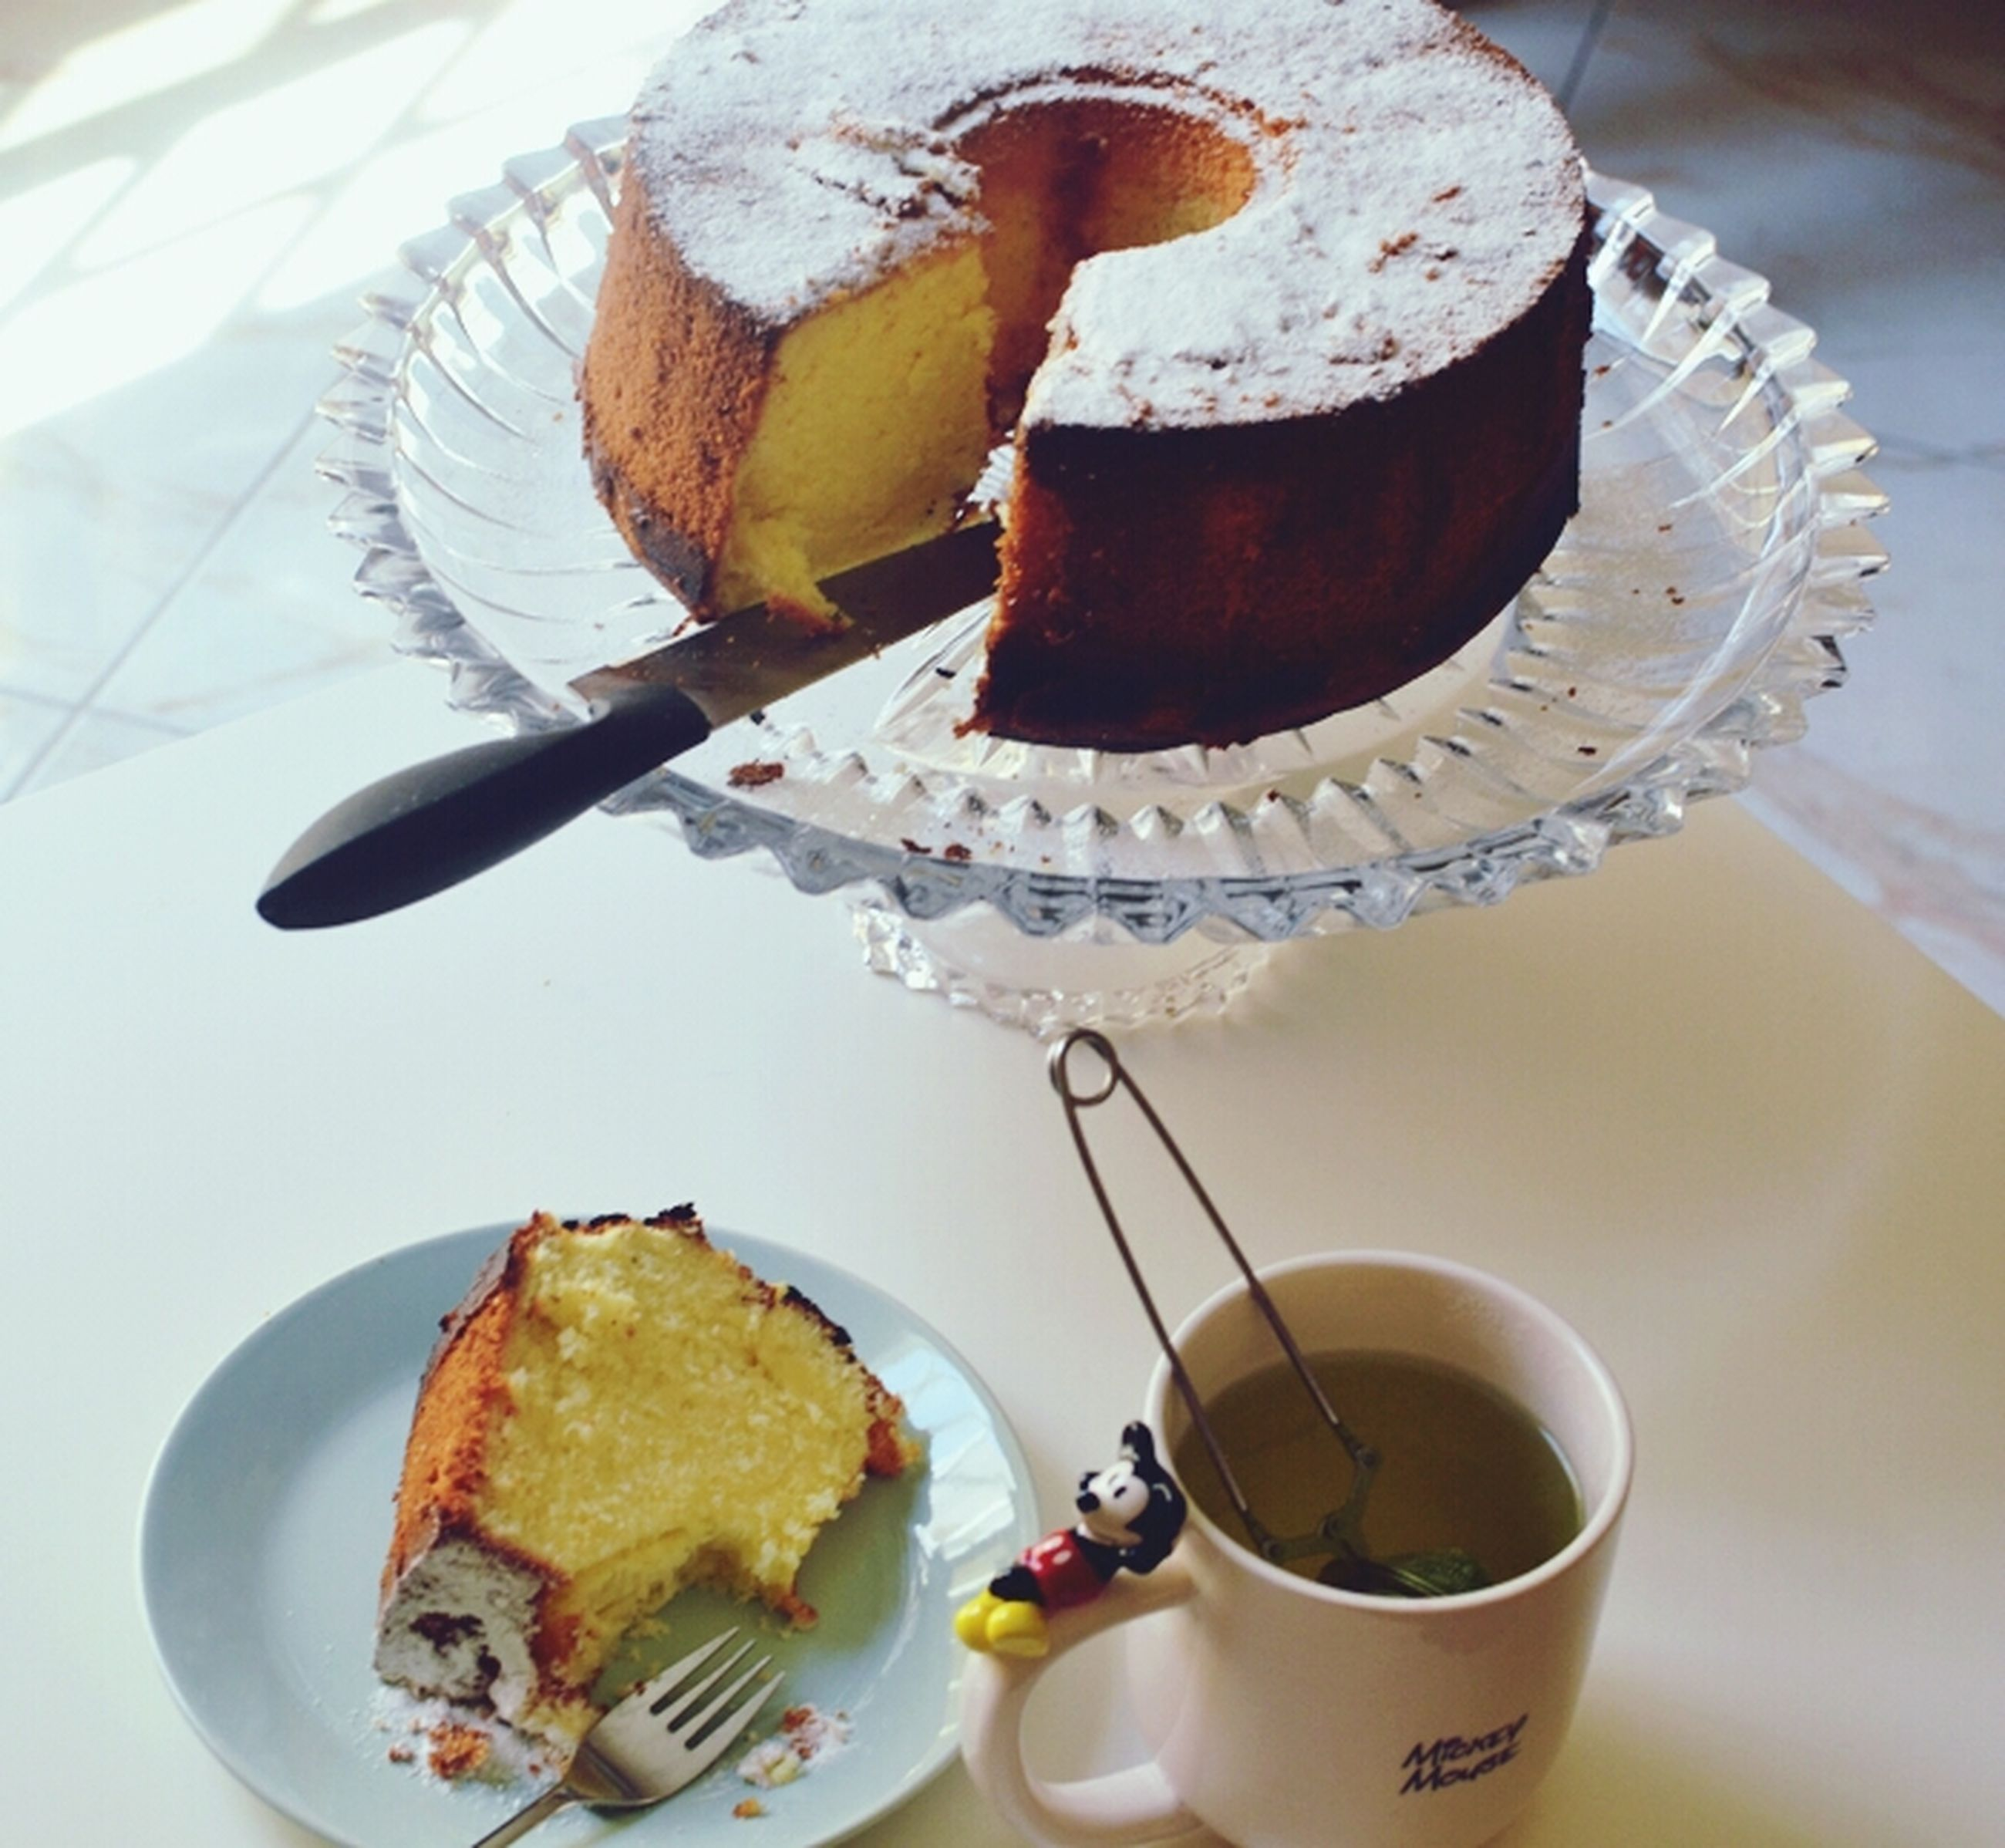 food and drink, indoors, freshness, sweet food, still life, table, plate, dessert, coffee cup, food, high angle view, indulgence, close-up, spoon, ready-to-eat, chocolate, refreshment, coffee - drink, drink, cake